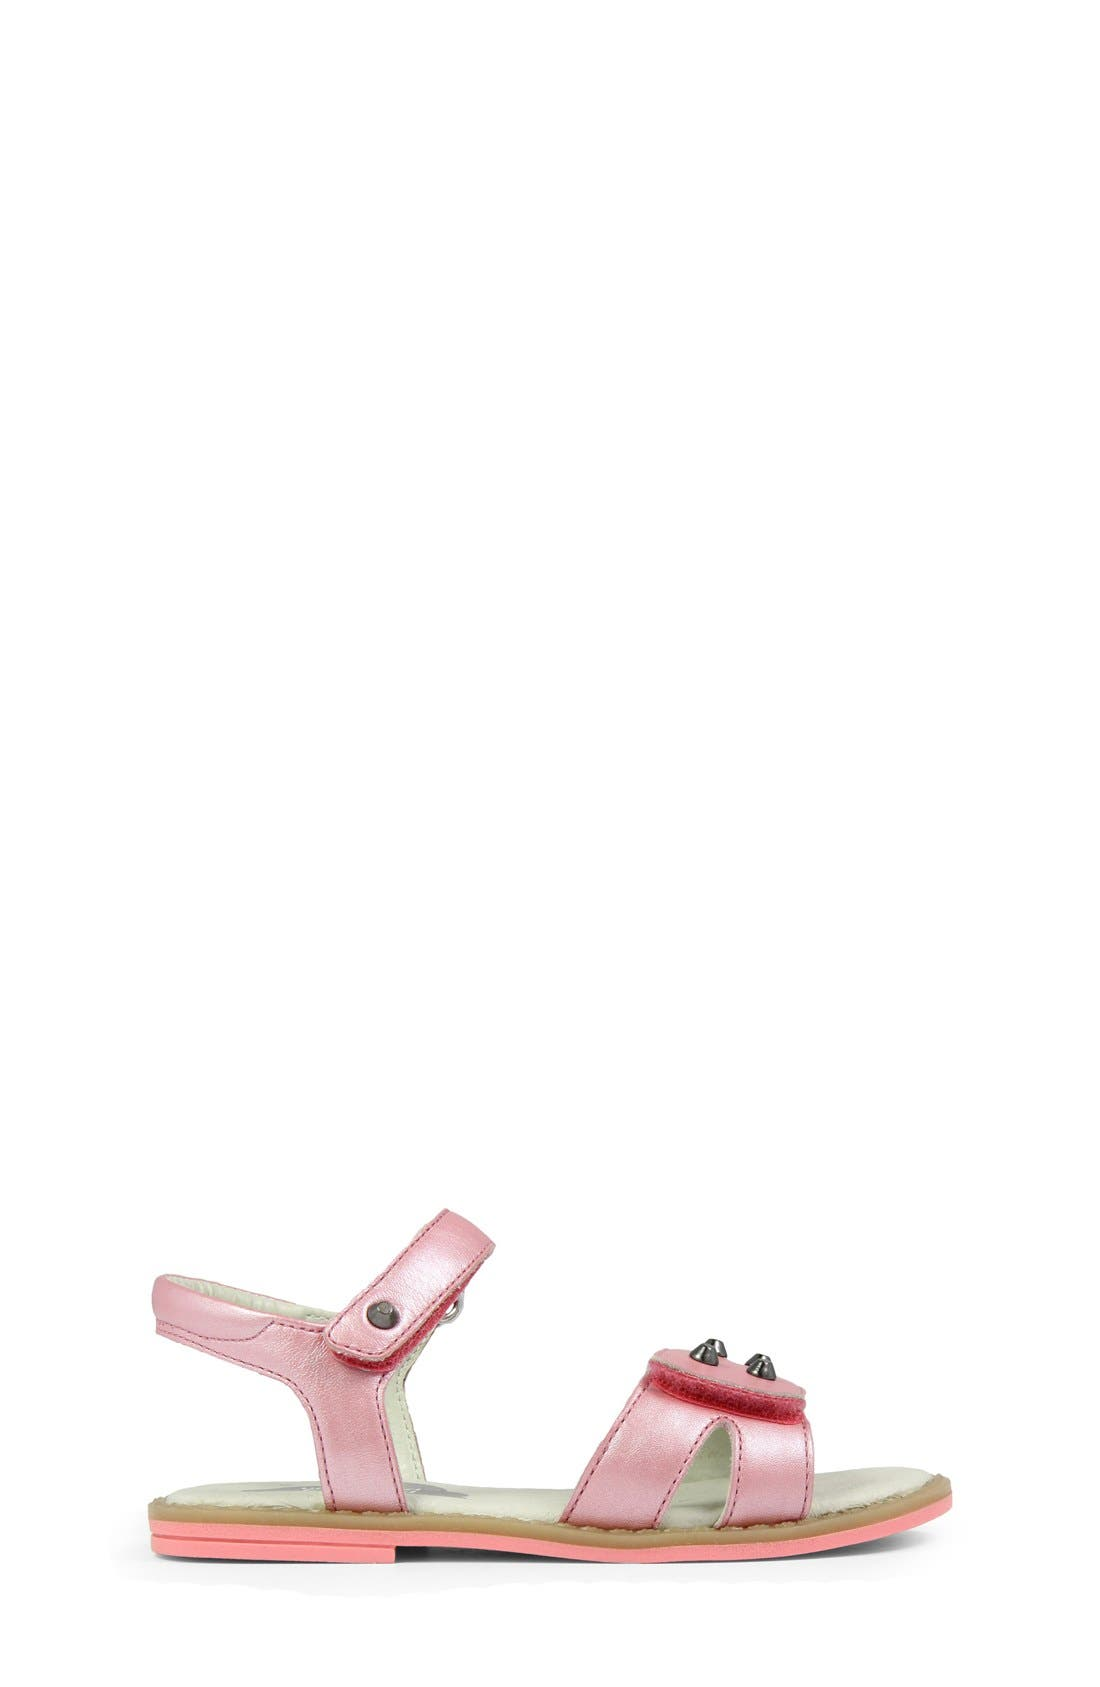 'Alvina' Sandal,                             Alternate thumbnail 6, color,